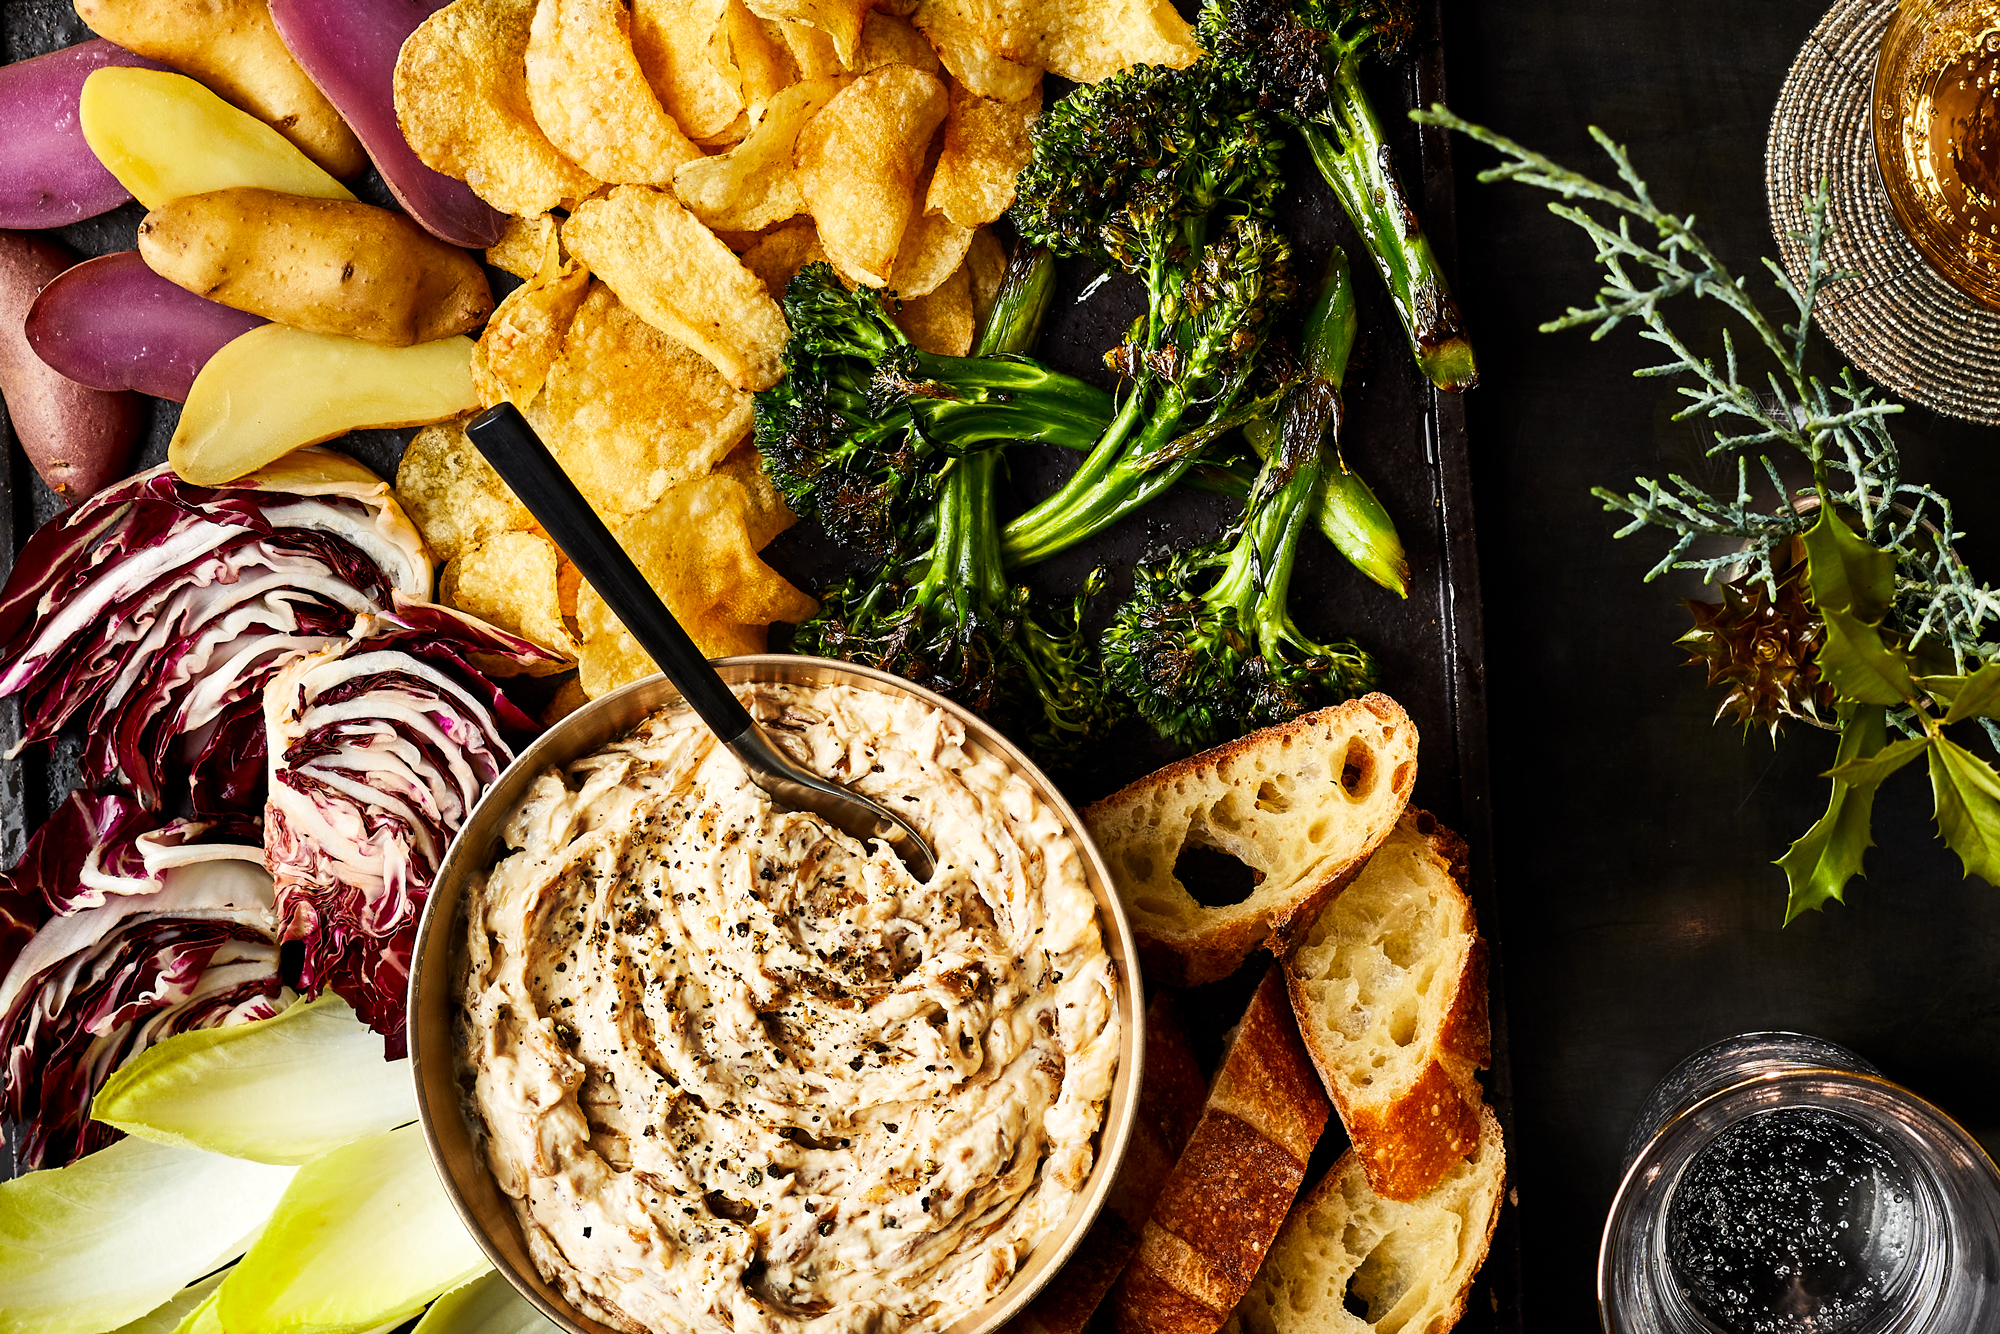 Caramelized Five Onion Dip